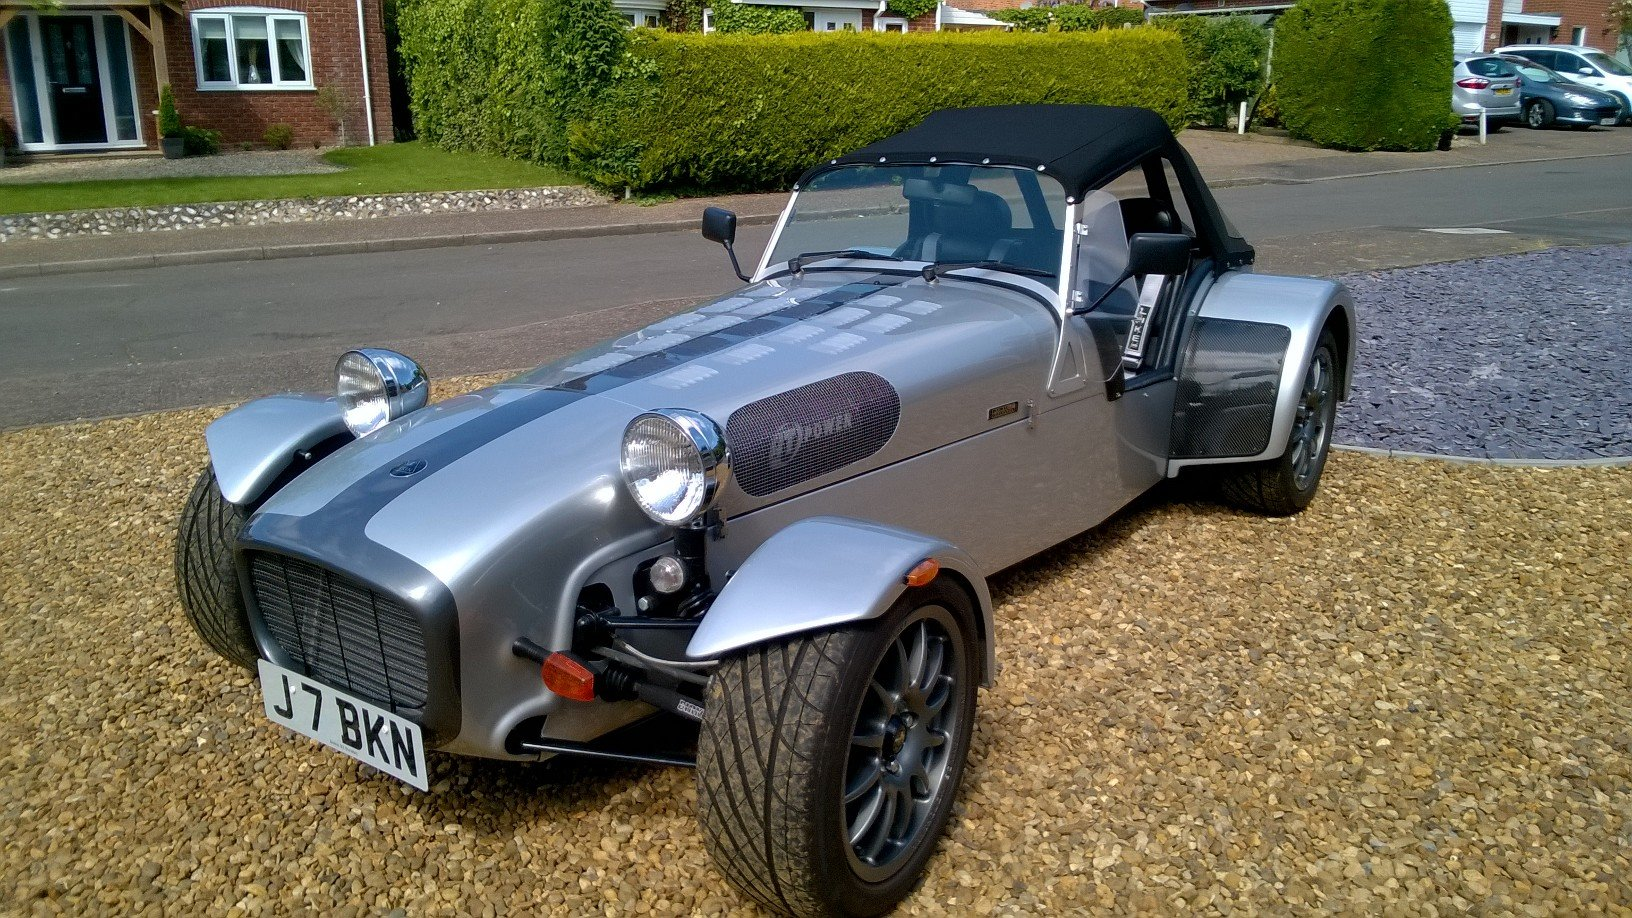 2012 Birkin S3 Kit Car  For Sale (picture 1 of 6)